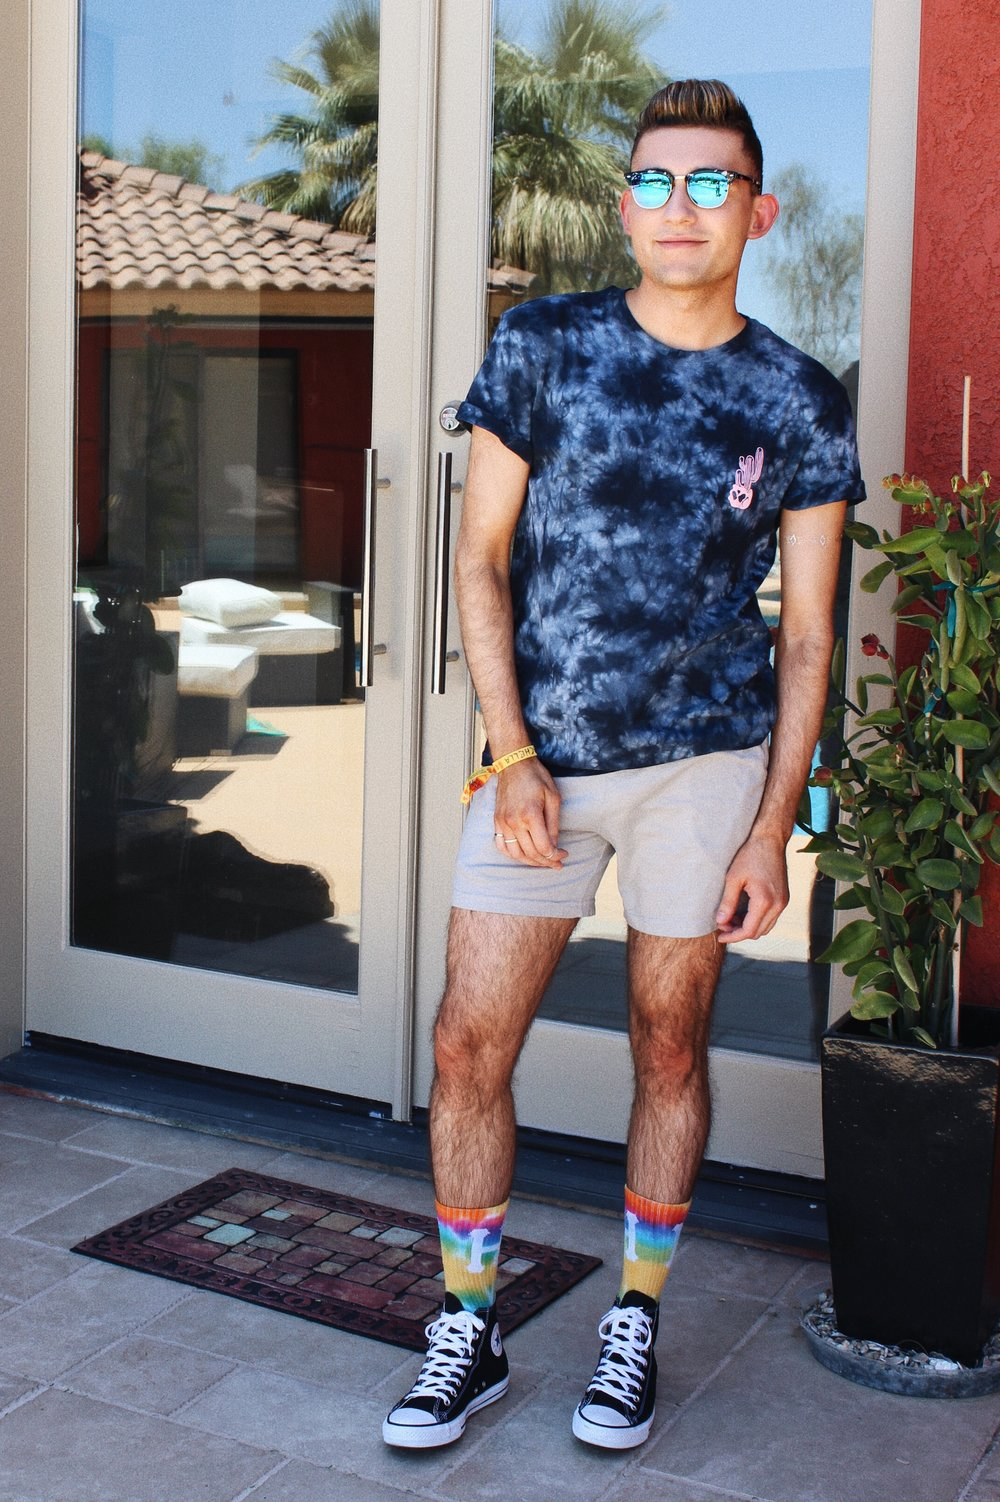 8c34f20824 h m SHIRT • american apparel SHORTS • huf SOCKS diff SUNGLASSES • converse  SHOES